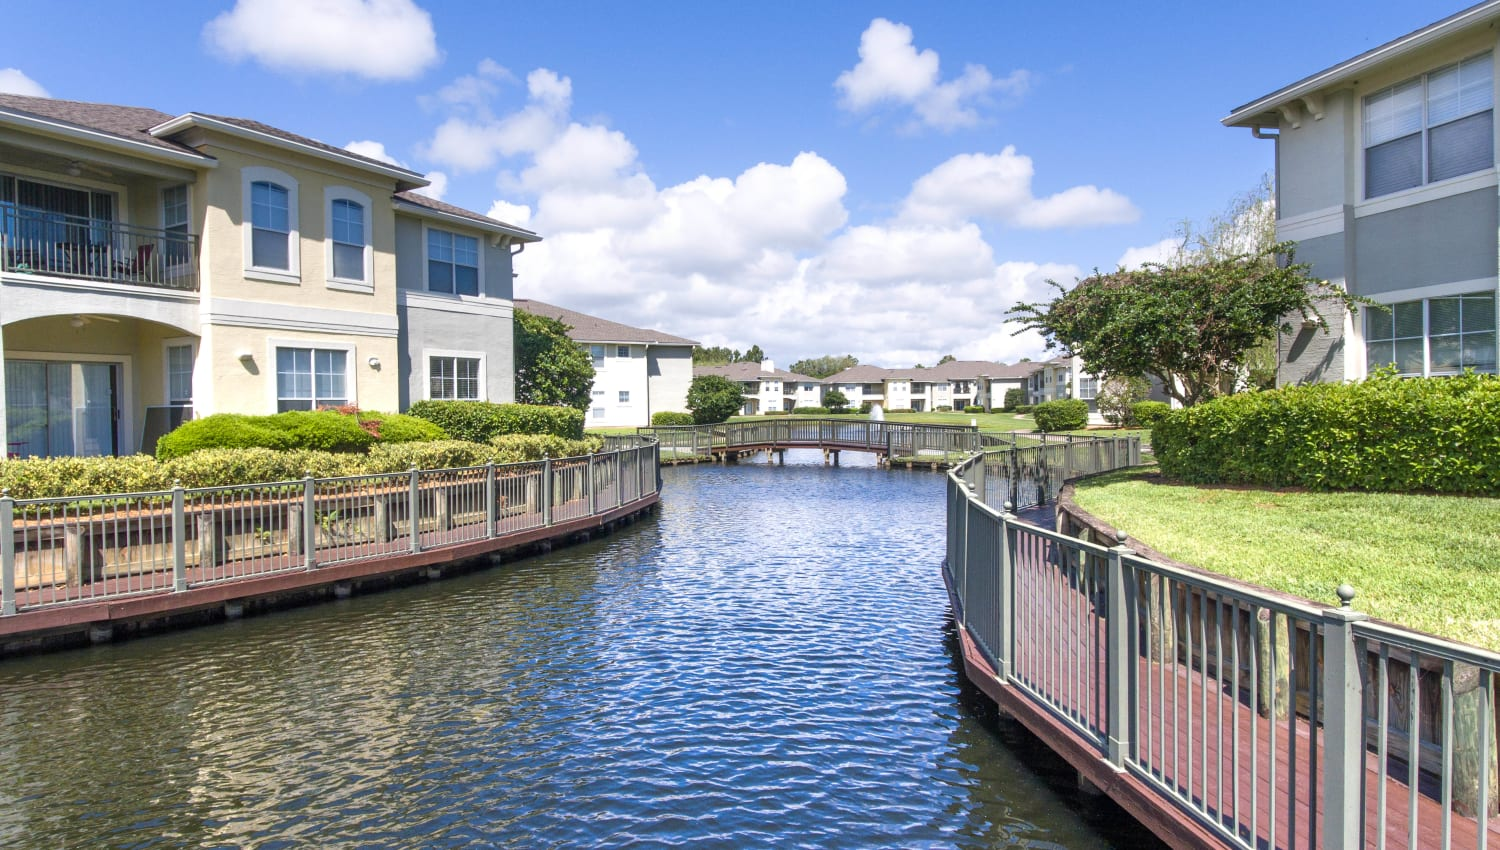 Resident buildings on the lake at Cape House in Jacksonville, Florida